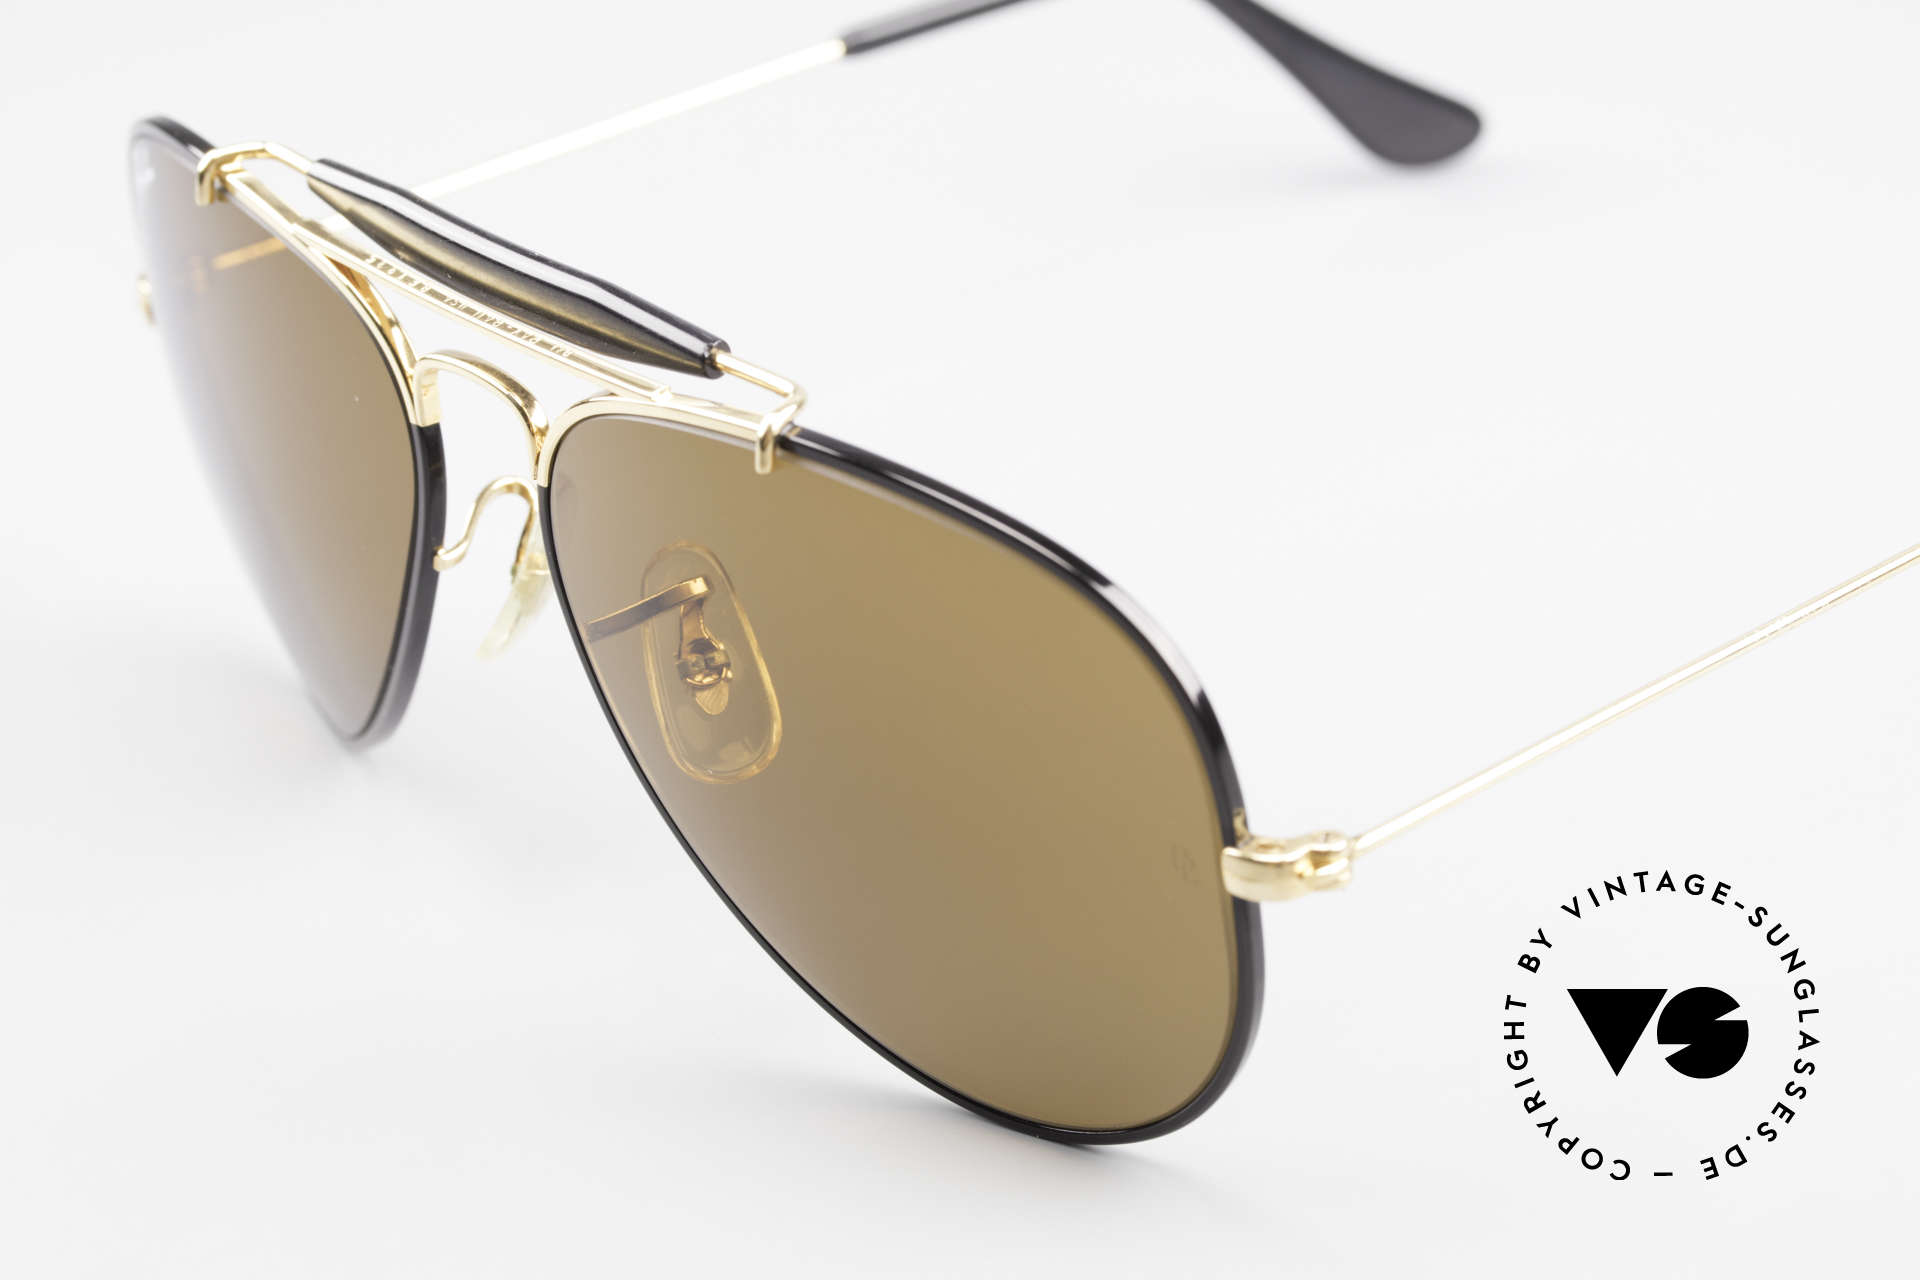 Ray Ban Outdoorsman Precious Metals Ray-Ban USA, unworn NOS rarity (sought-after collector's item), Made for Men and Women